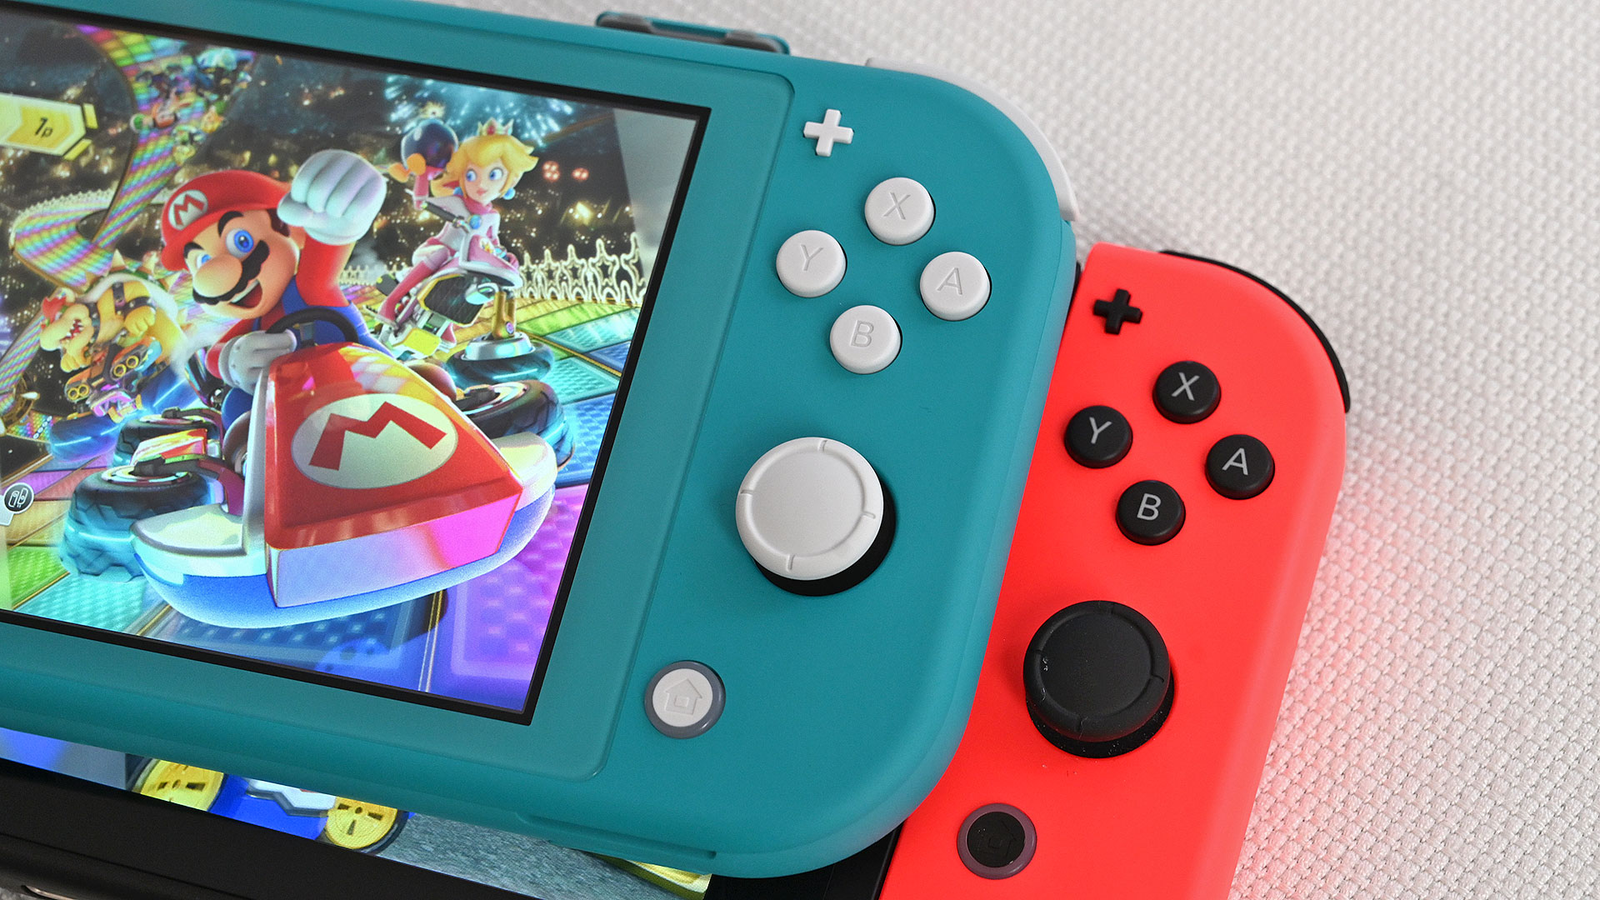 The Switch Lite's face buttons look and feel better than those on the standard Switch.